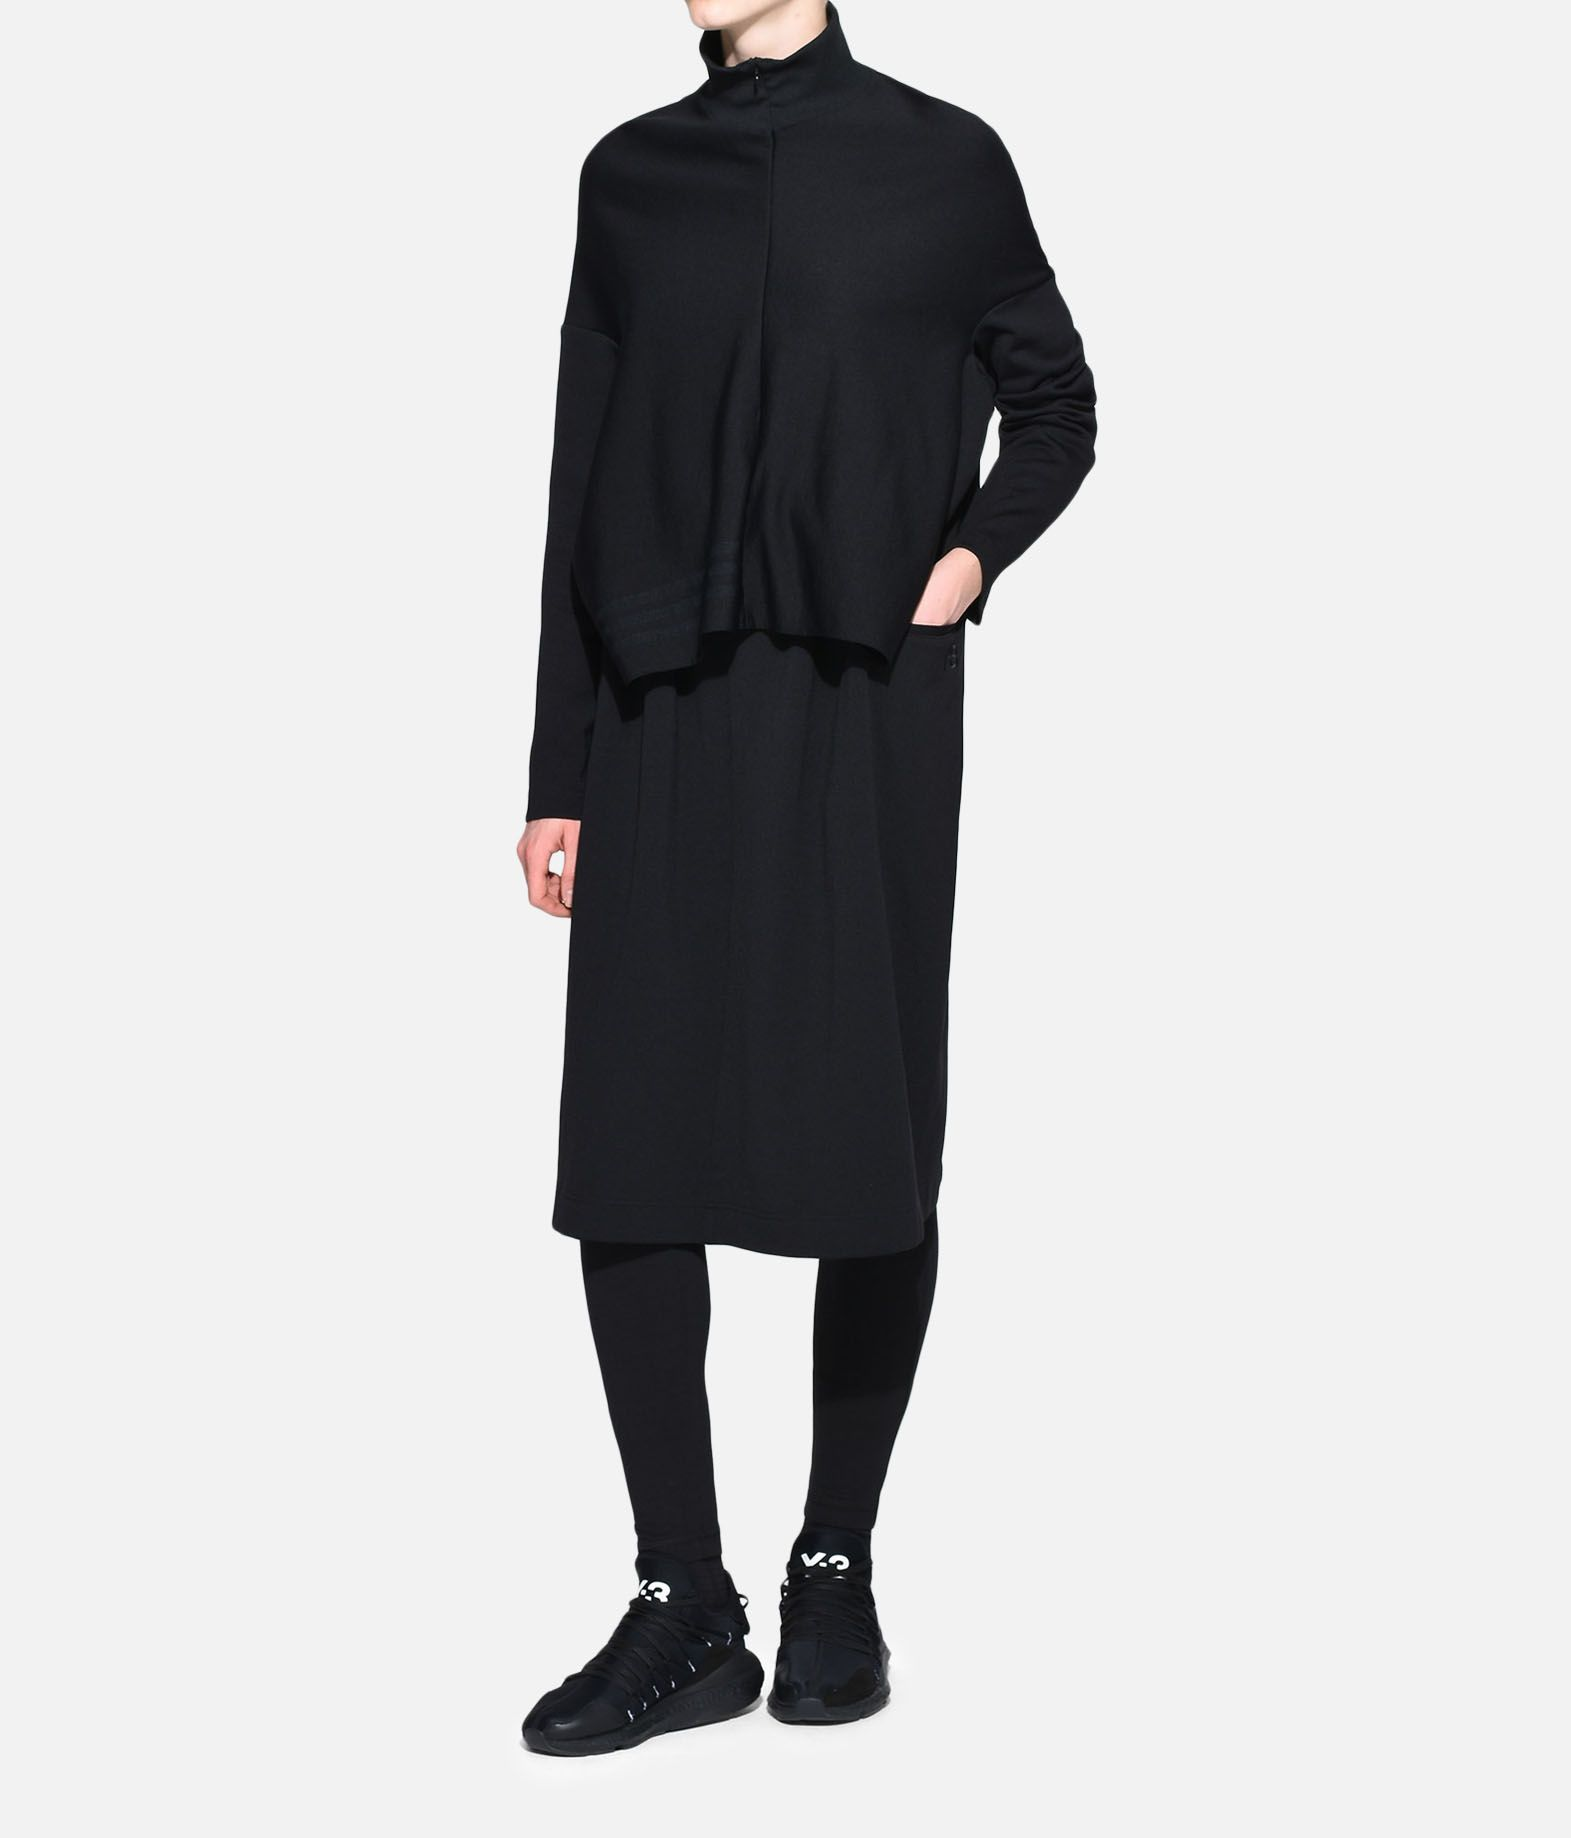 Y-3 Y-3 Matte Track Dress 3/4 length dress Woman a